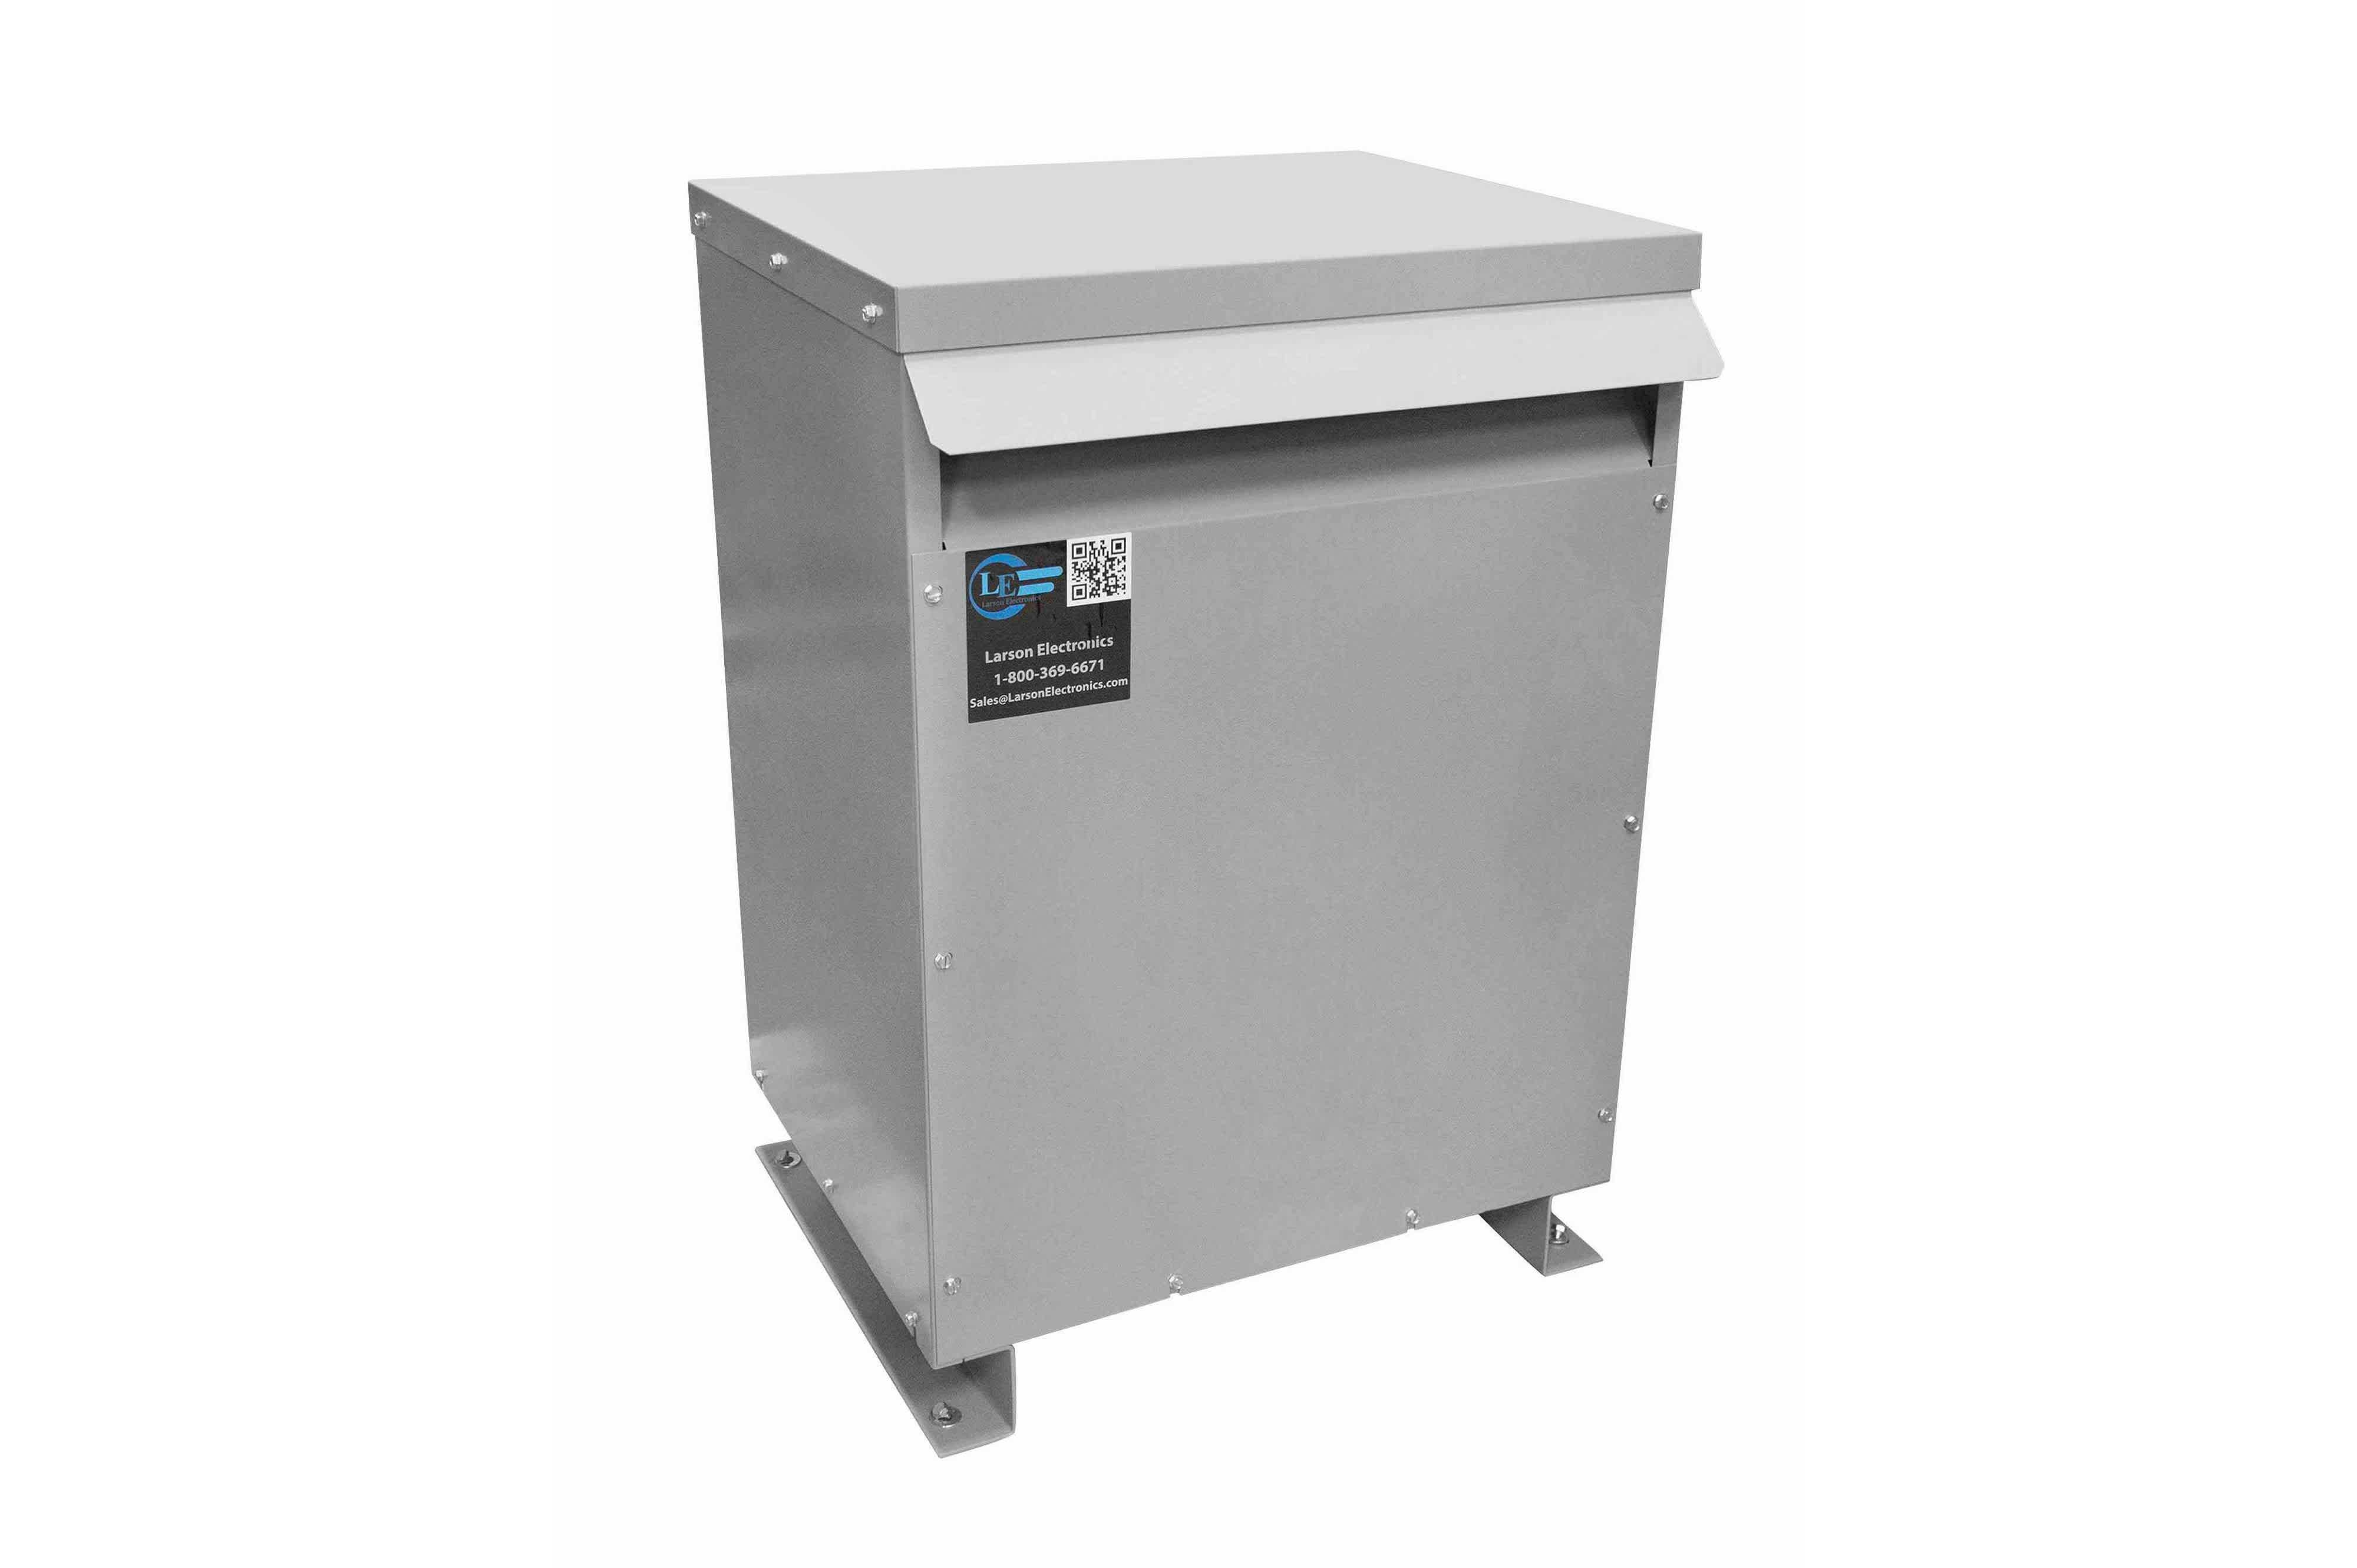 70 kVA 3PH Isolation Transformer, 400V Delta Primary, 208V Delta Secondary, N3R, Ventilated, 60 Hz